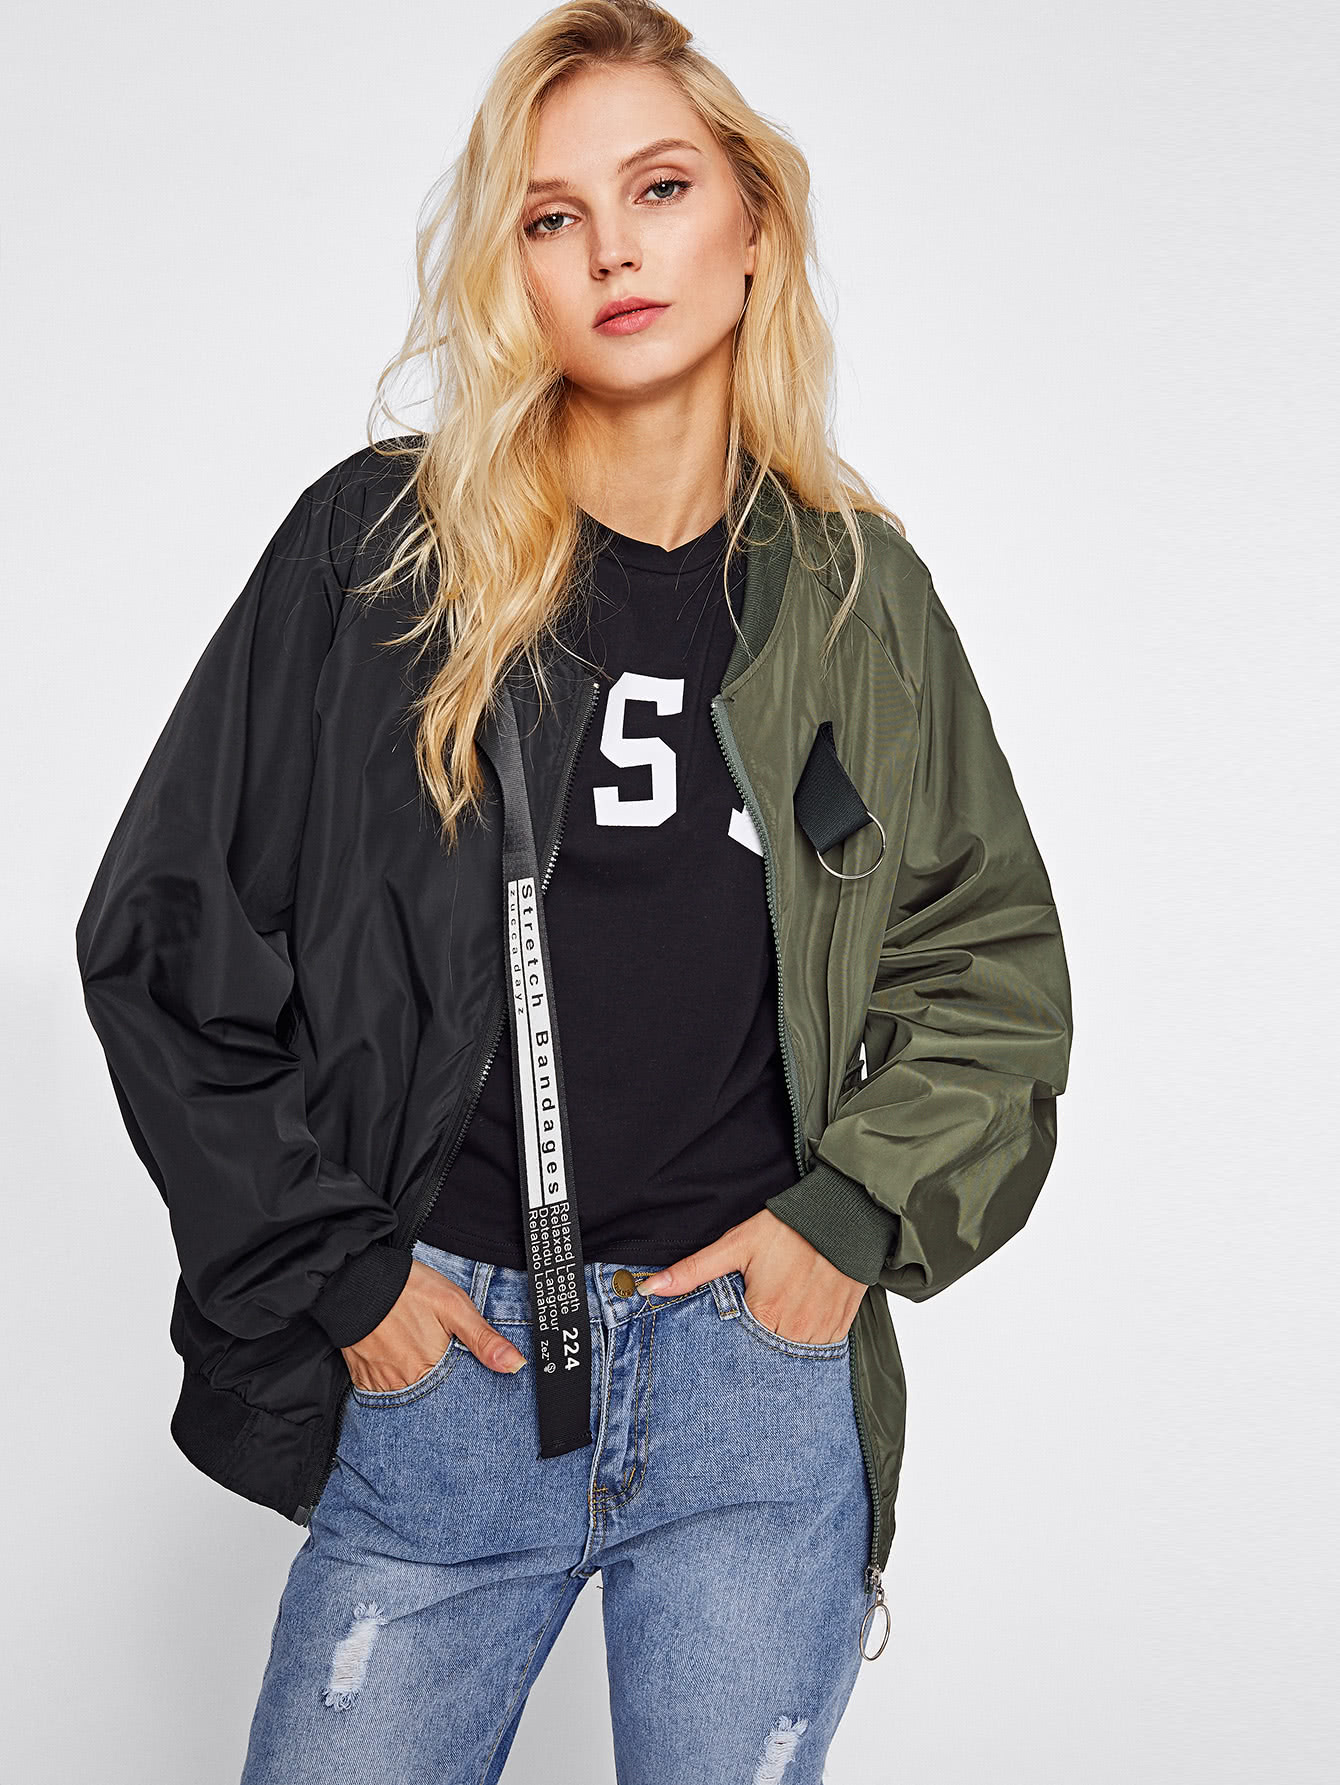 Two Tone Patch Back Letter Ribbon Detail Bomber Jacket two tone drop shoulder sweatshirt